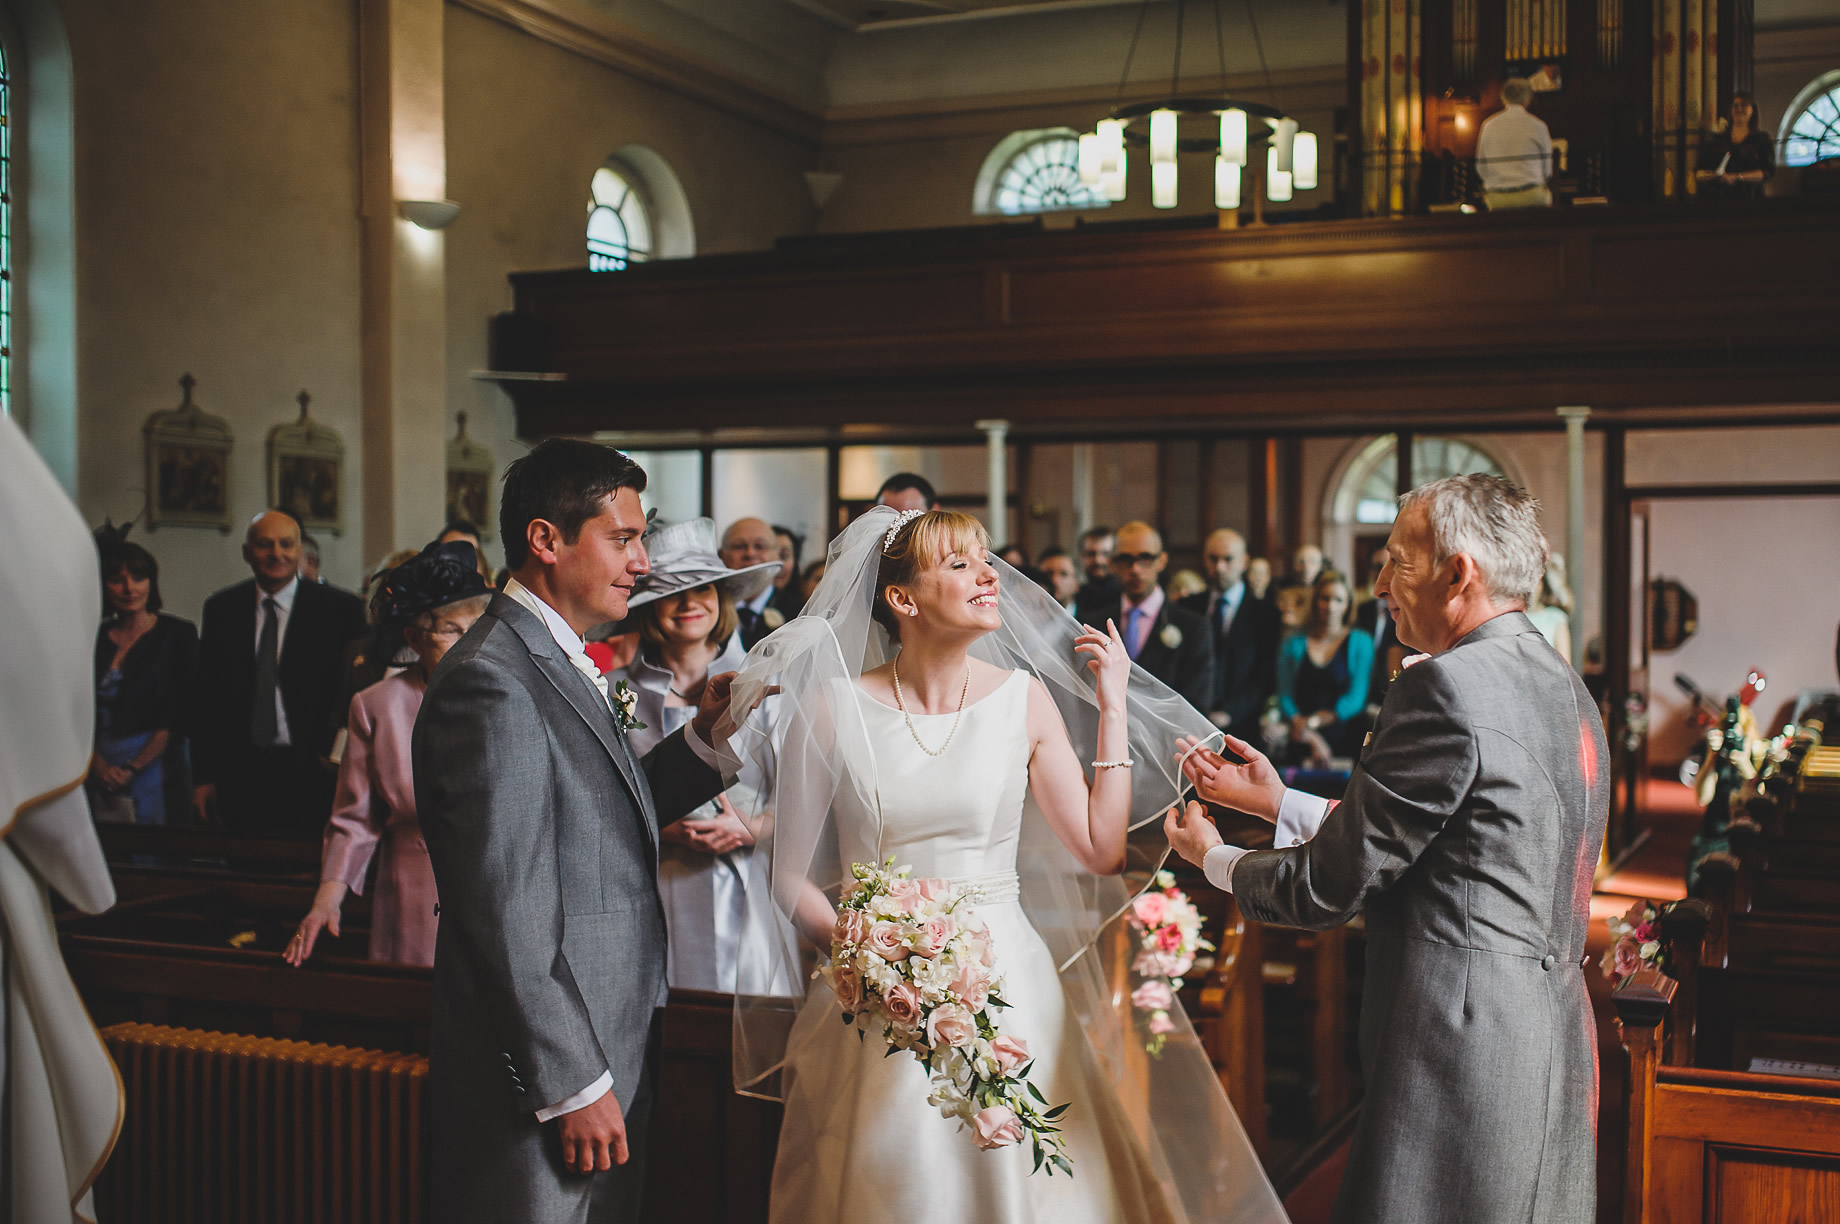 Charlotte and Will's Wedding at Mitton Hall - A Preview 019